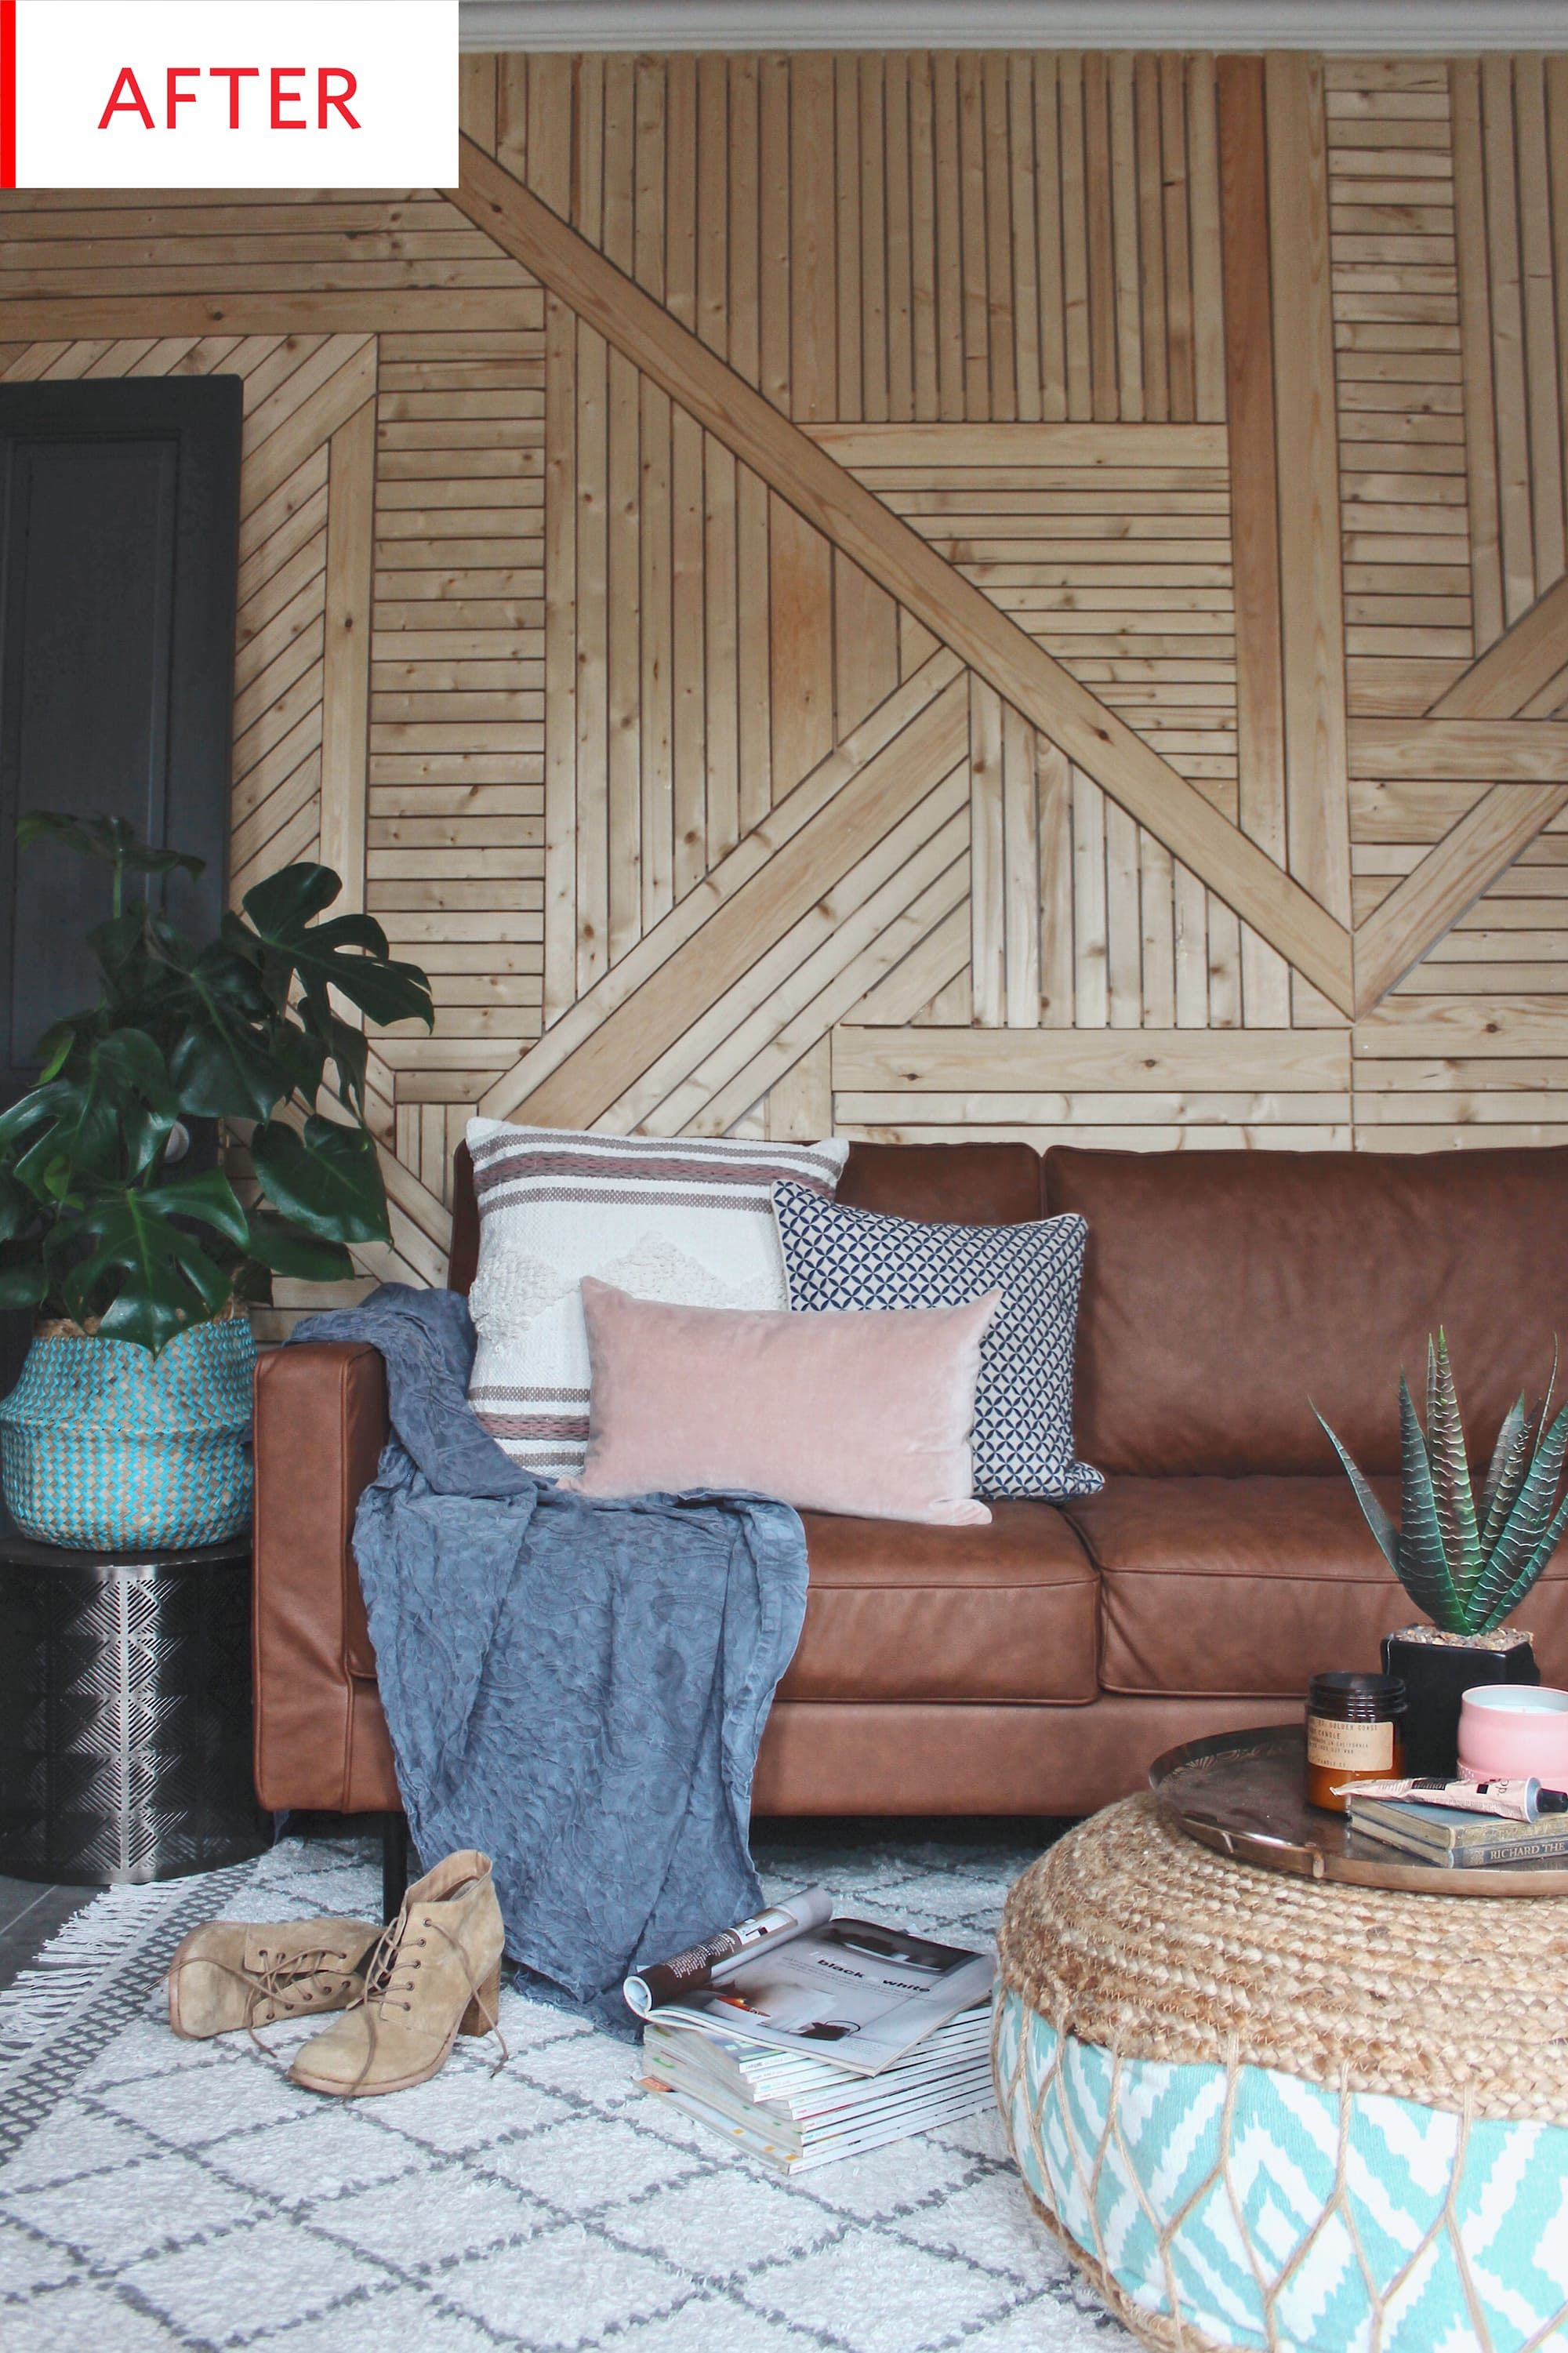 Living Room Walls Wood Panels: Before And After: This Wood Panel Living Room Wall Puts